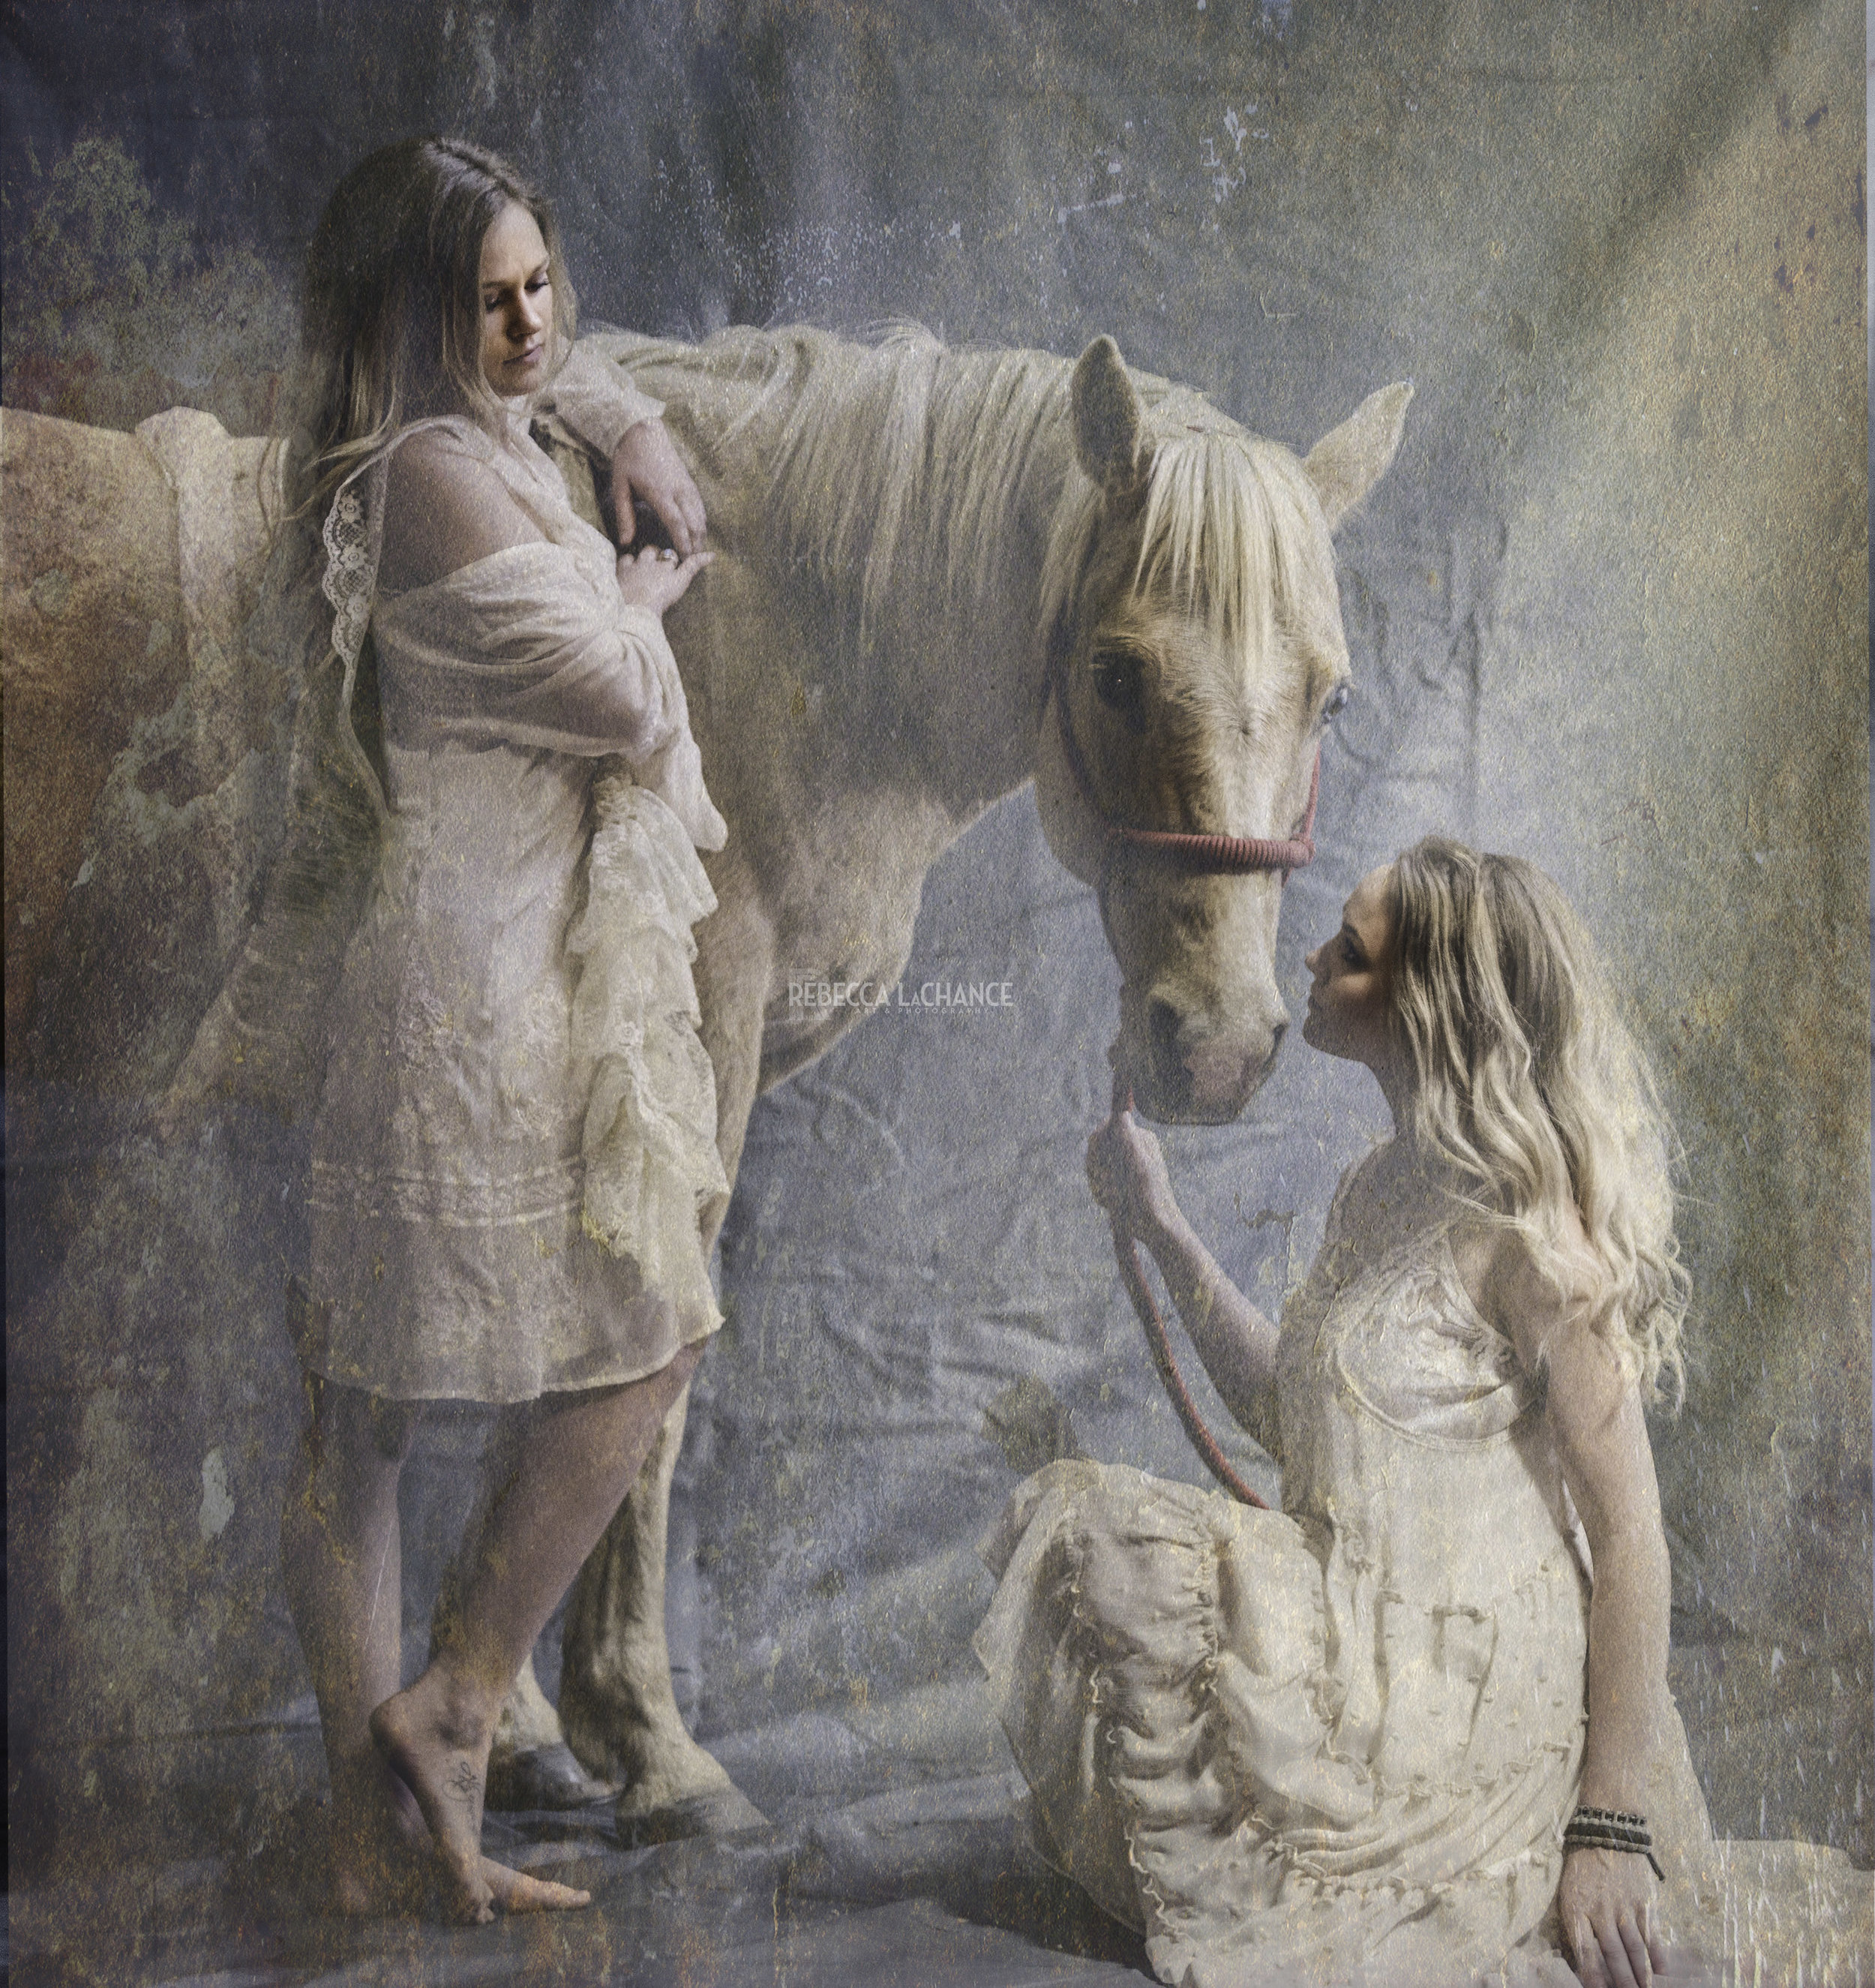 """""""Sparky and his girls"""" (c) Rebecca LaChance, 2017. Cle Elum, WA. The lovely sisters,   Lutisha   and Madysen Owens with their horse, Sparky. Such a patient horse! One of   several   images created during the Corinne Alavekios Mixed Media Fine Art Workshop."""